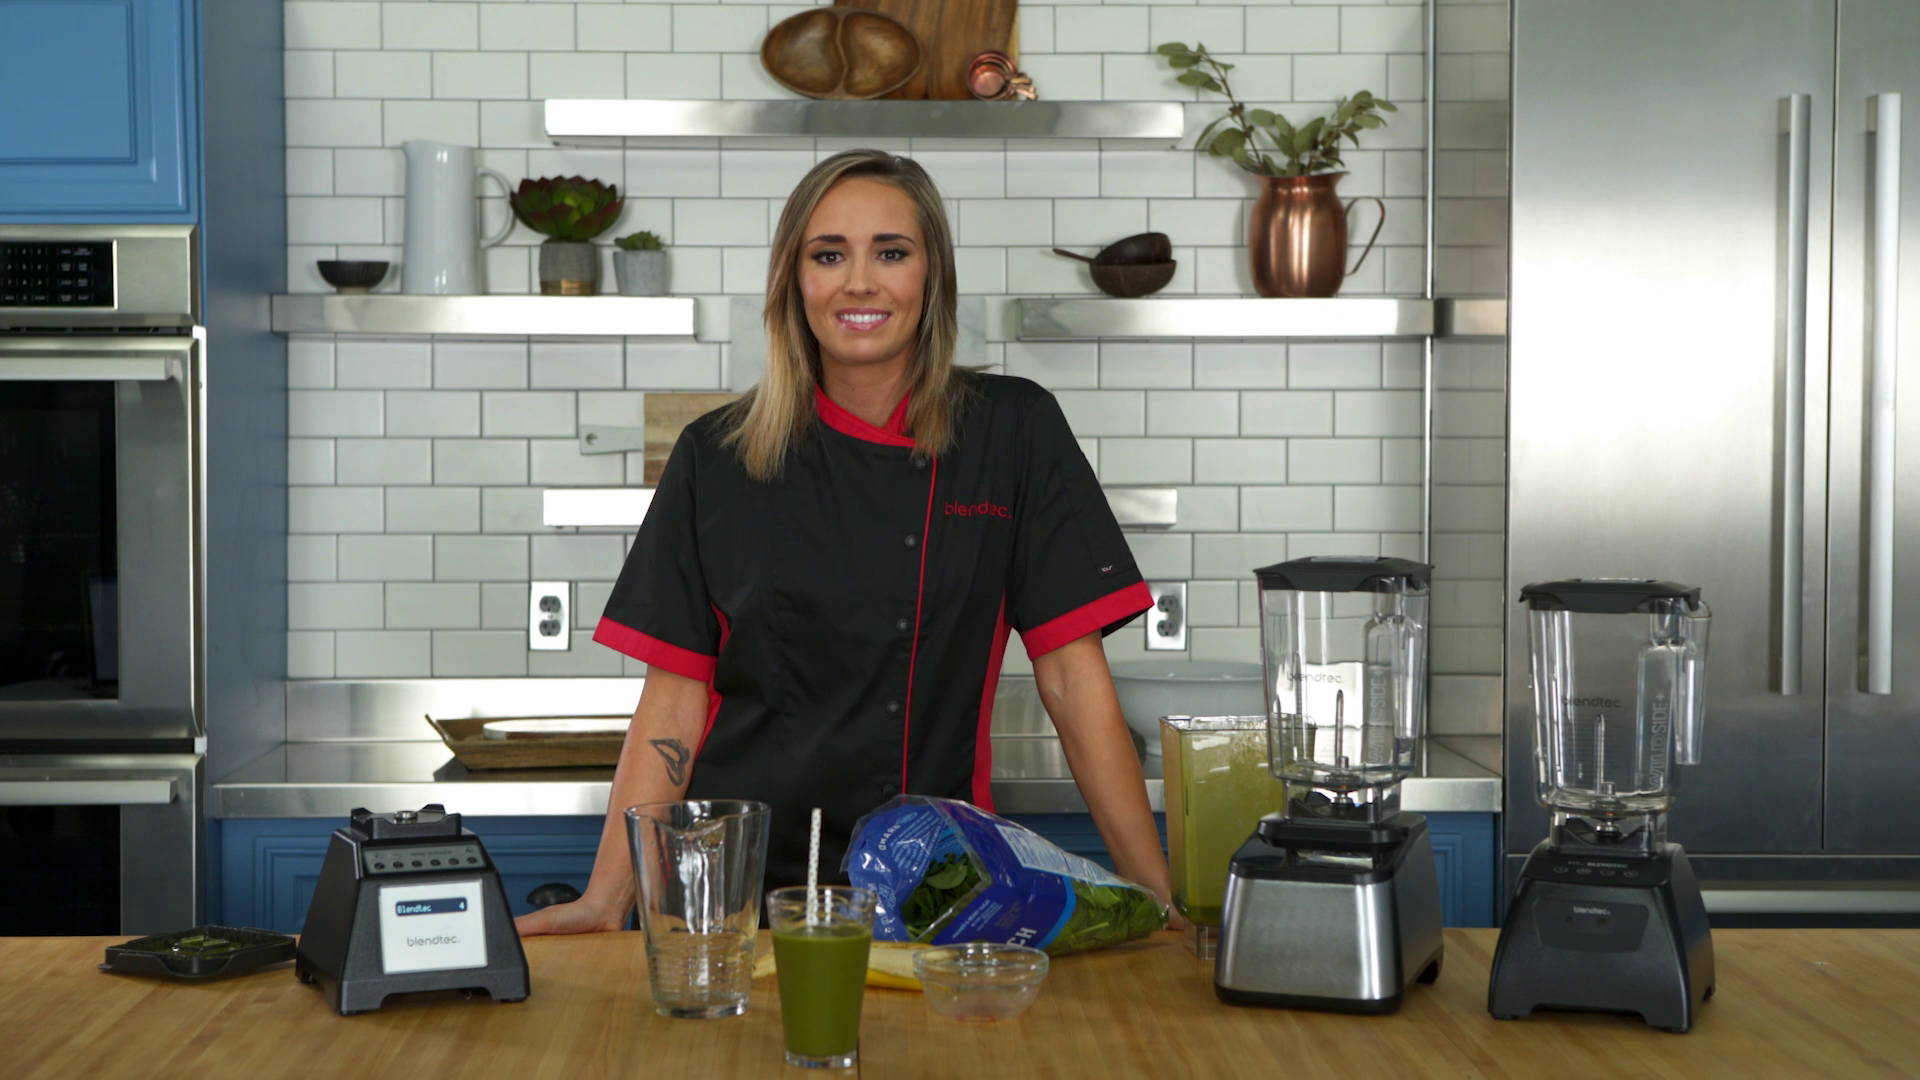 Blending 101 Green Smoothie